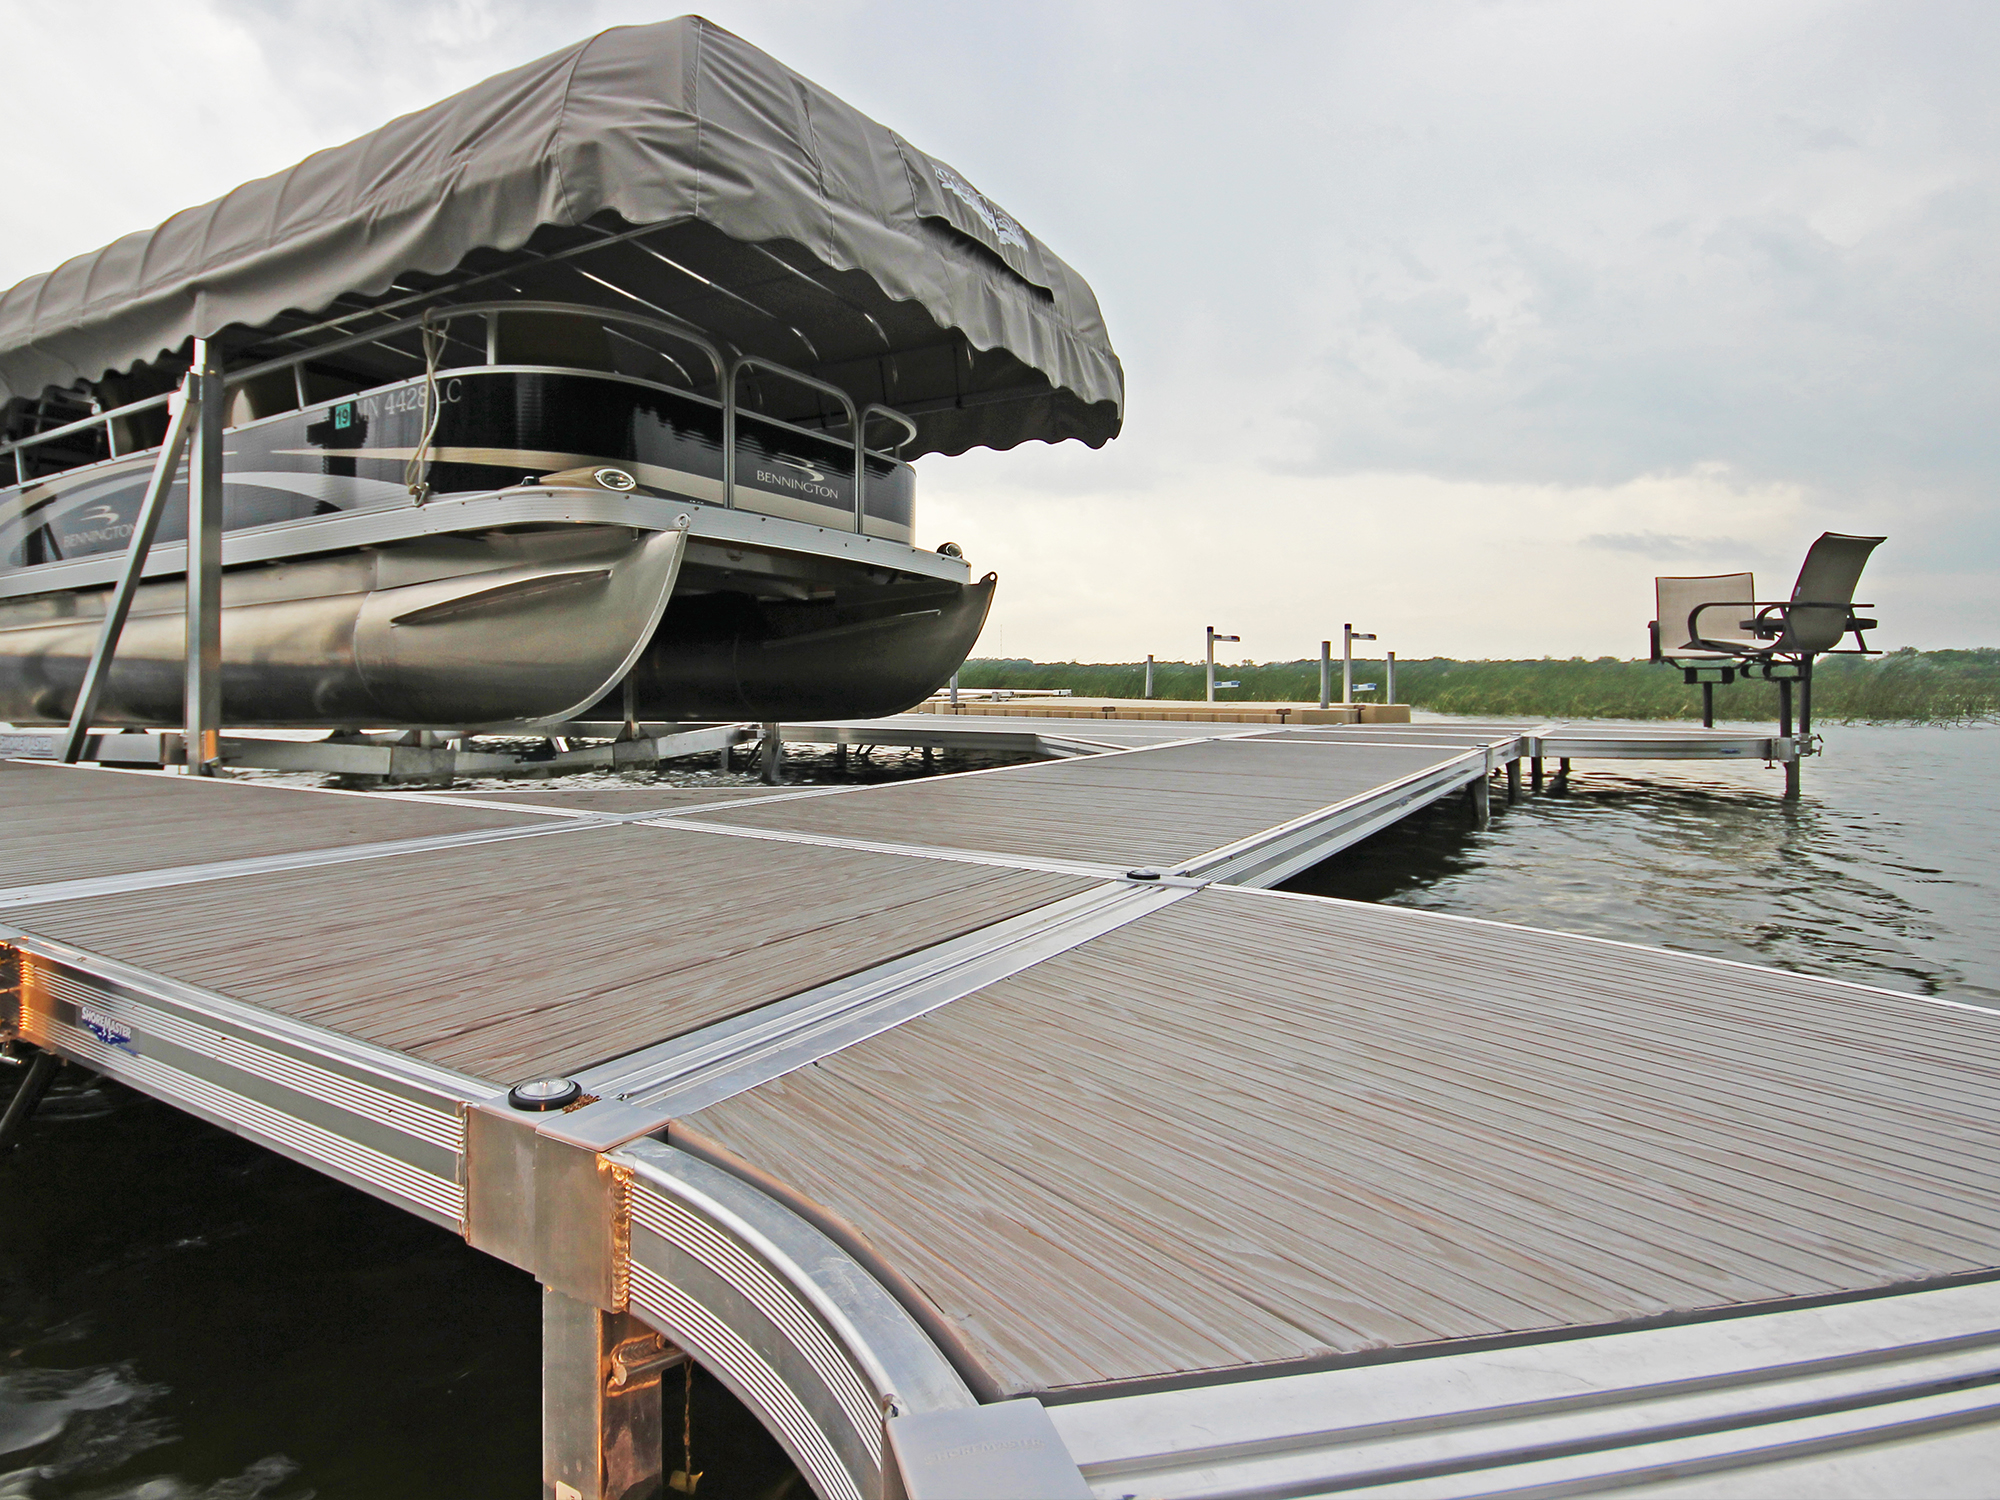 ShoreMaster Infintiy RS4 Dock with Gray Woodgain Decking and Curve Dock, Vertical Lift, Furniture